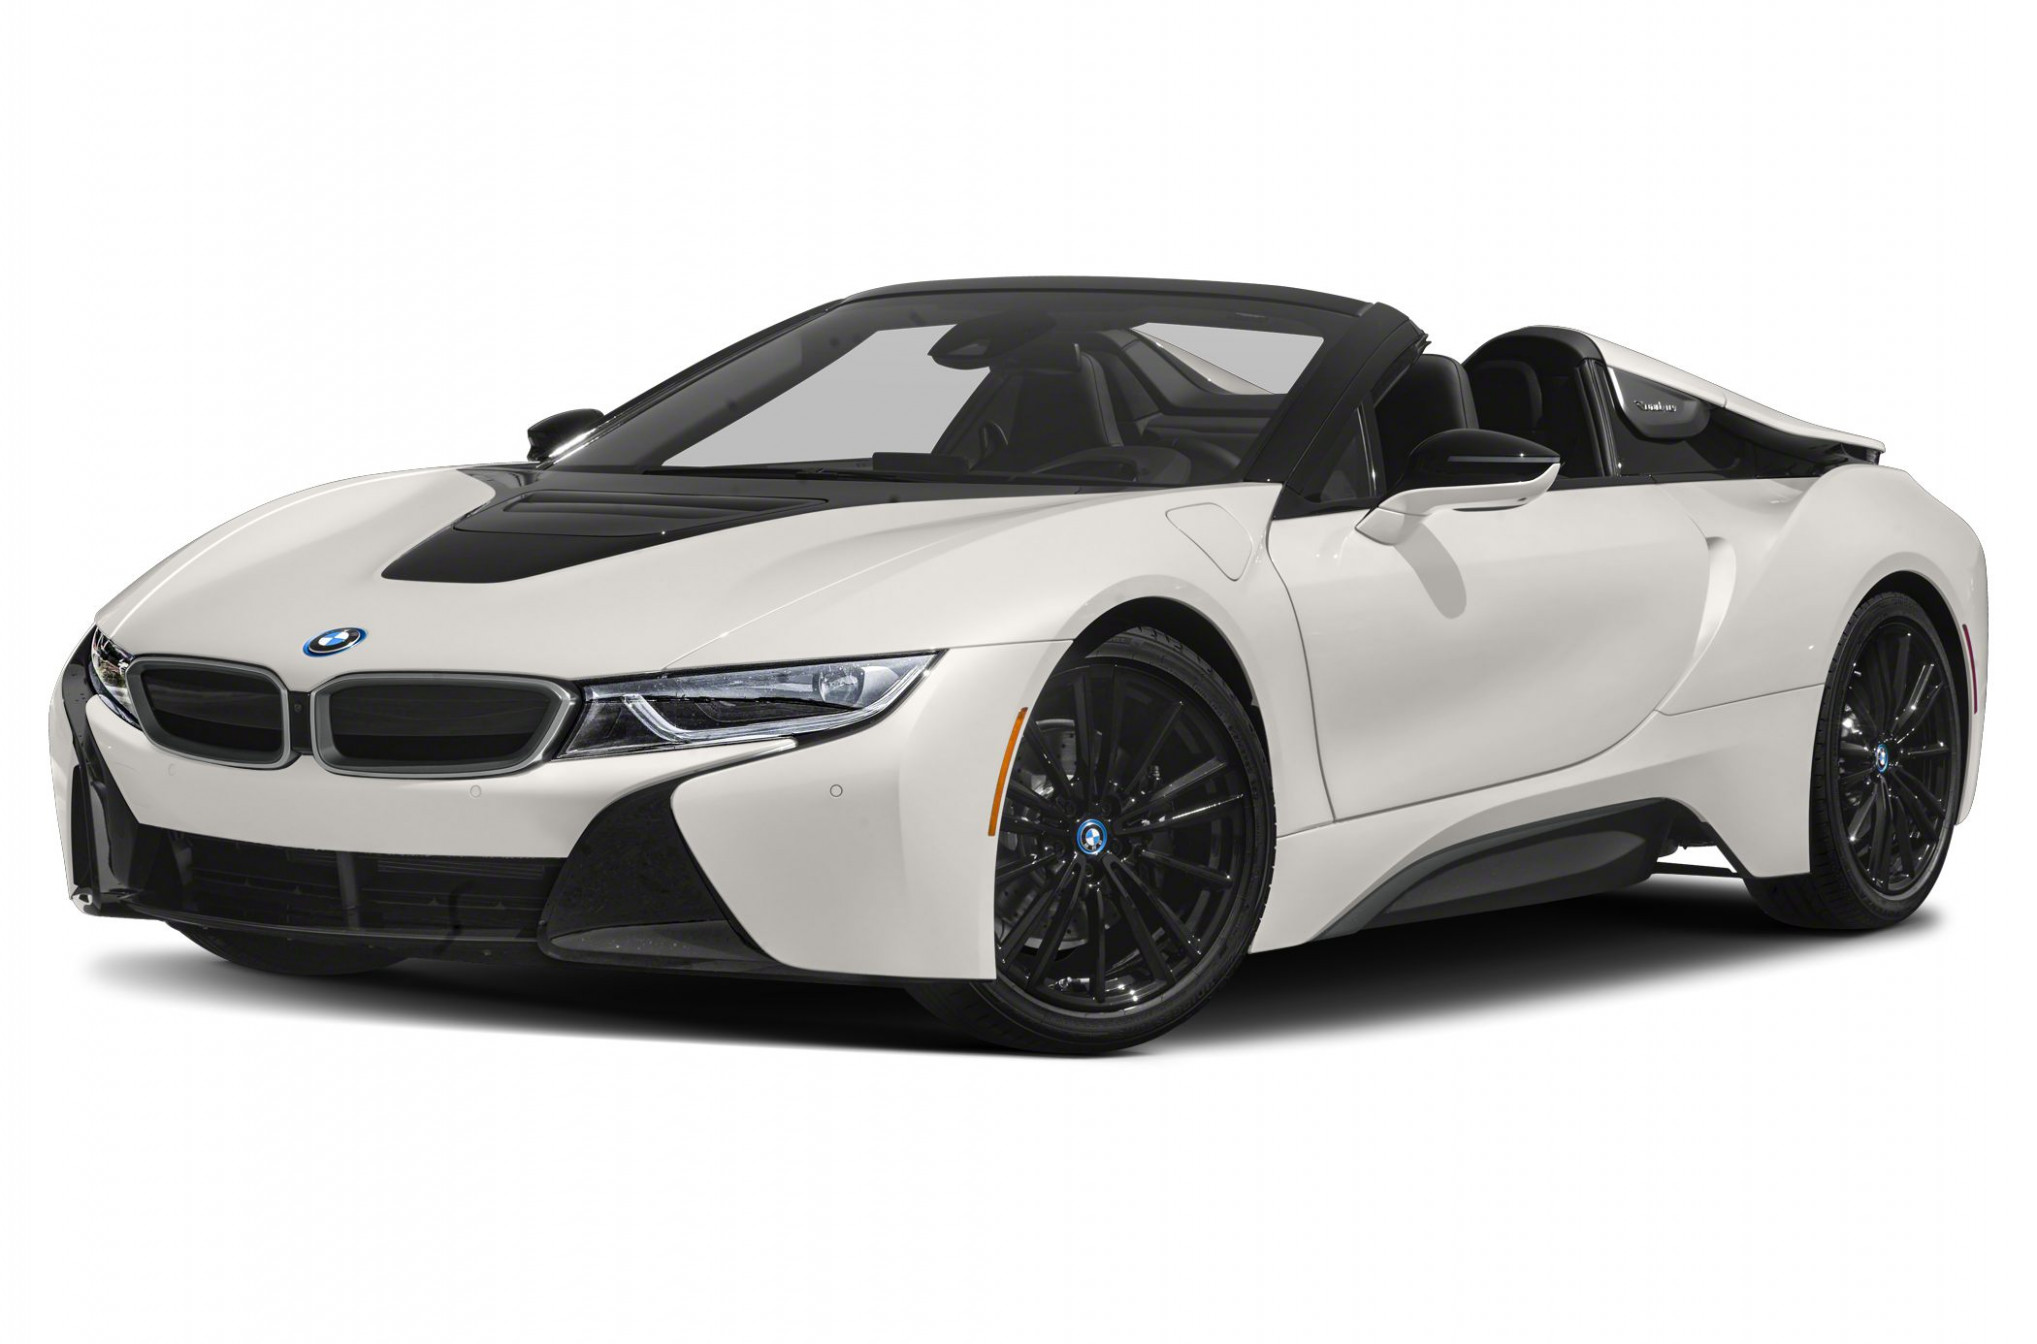 8 BMW i8 Base 8dr All-wheel Drive Roadster Pictures - 2020 bmw i8 convertible